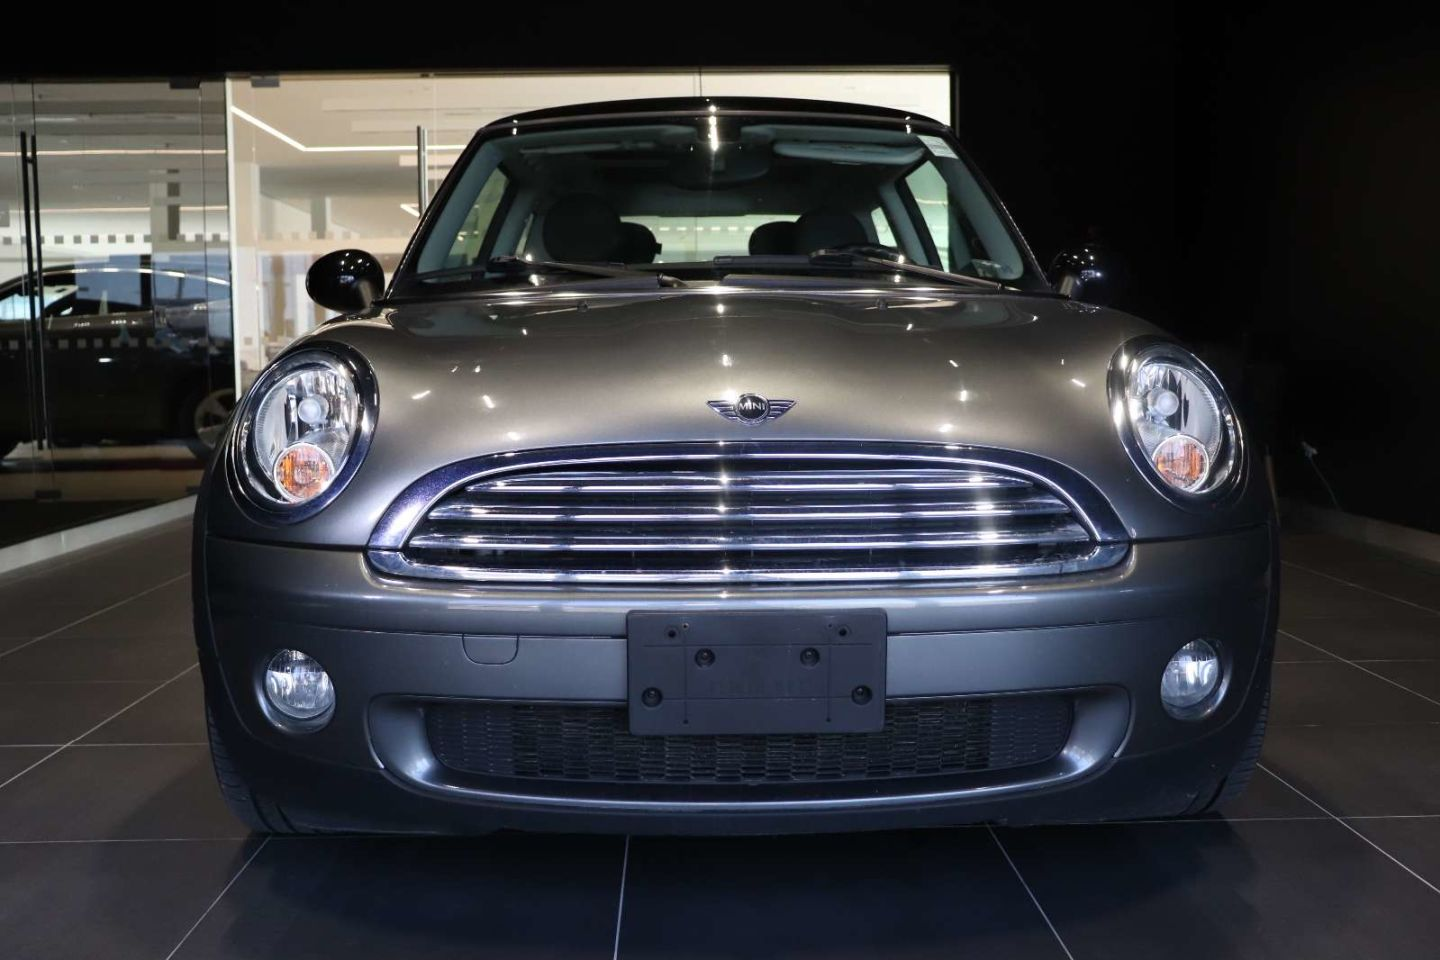 2010 MINI Cooper Hardtop  for sale in London, Ontario